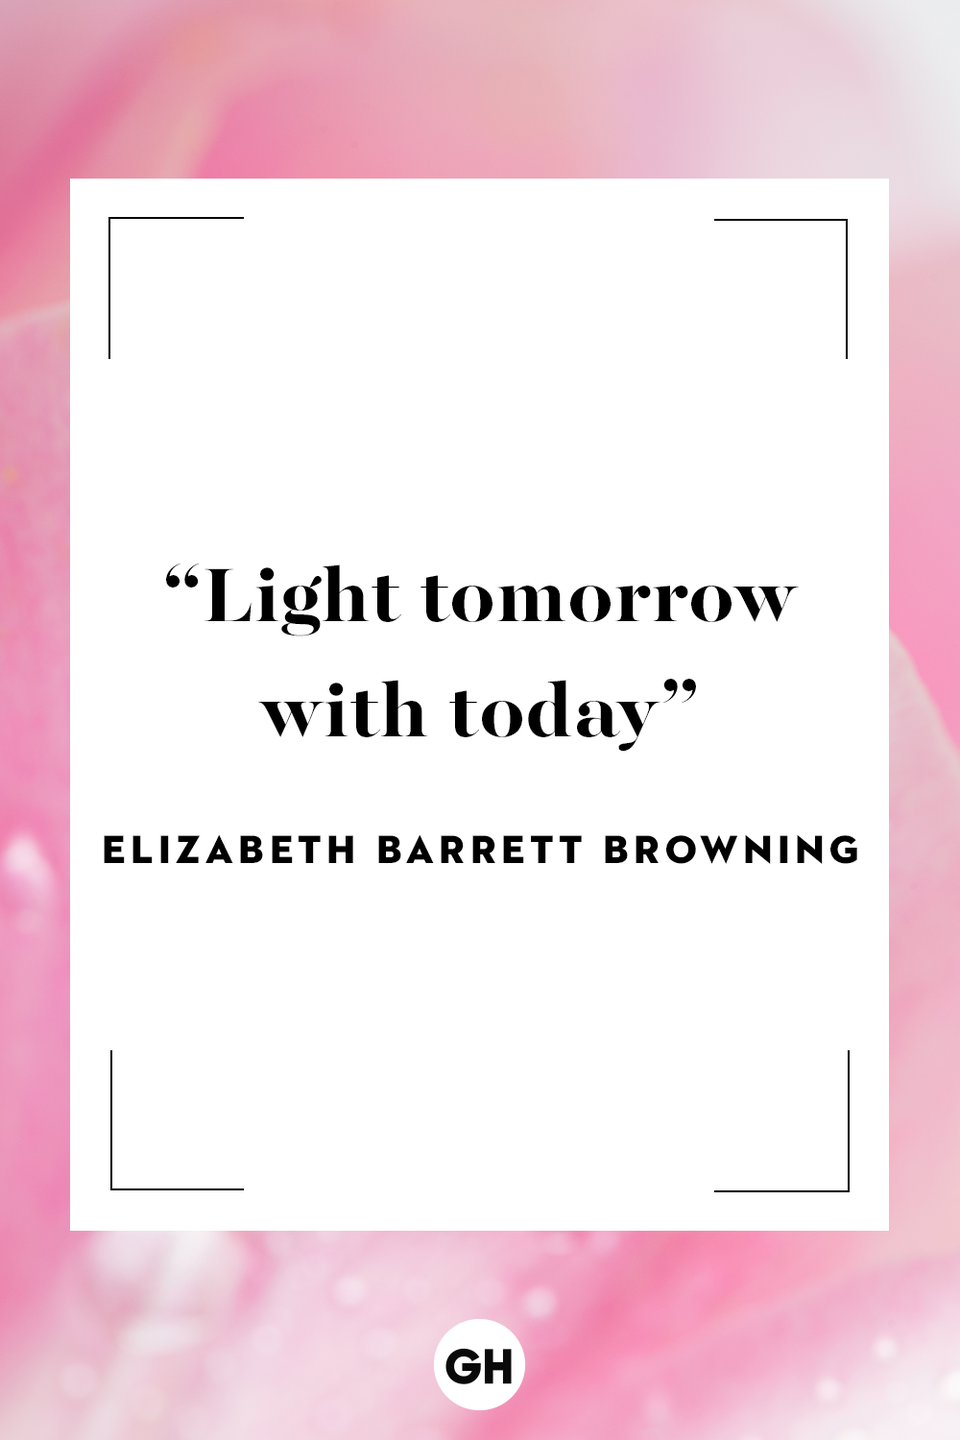 <p>Light tomorrow with today!</p>